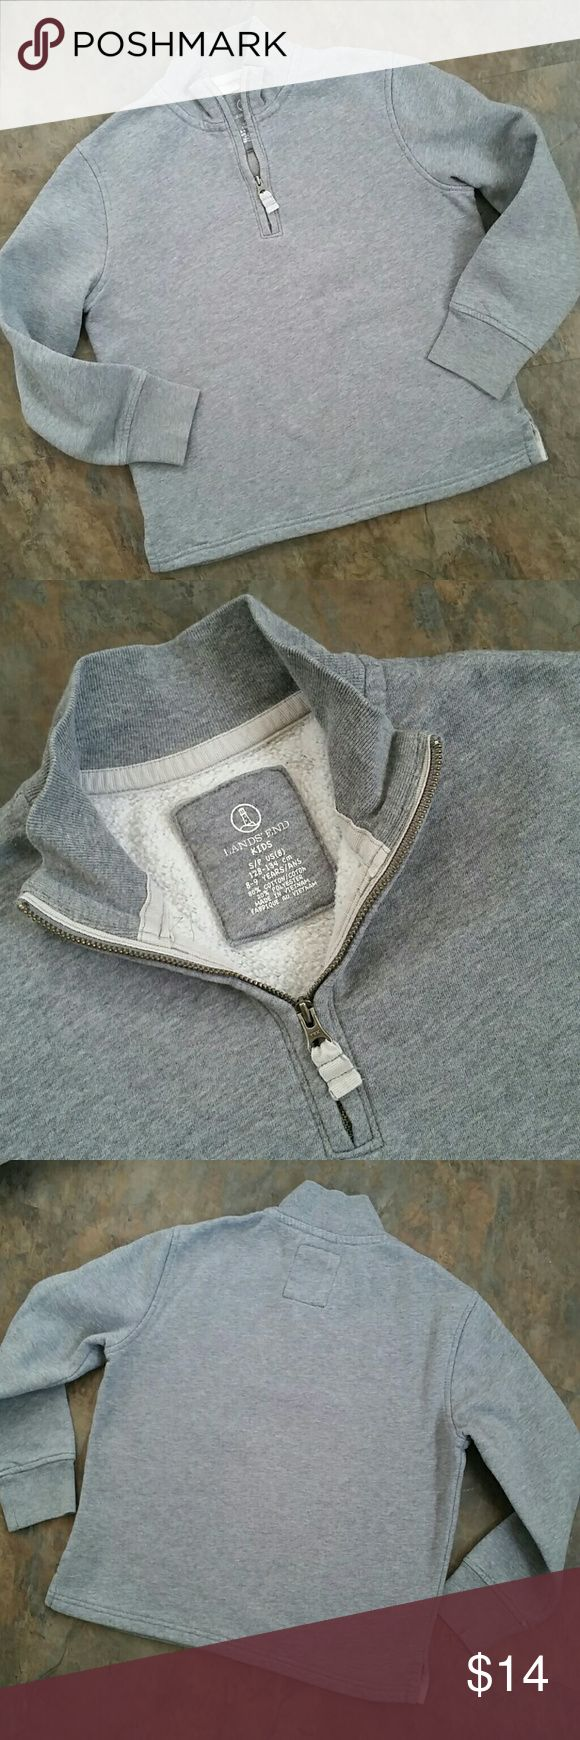 HOST PICK!! Size 7/8 Lands' End Size 7/8 (Small) boys' mock-neck sweatshirt. * Made by Lands' End.  In excellent condition. No holes, stains, or marks at all. Only the slightest signs of wash or wear. * Tag says size 8, but it runs just a little short so I am listing it as size 7/8.  * Stand-up neck with quarter-zip. Neat banded cuffs. French rib fabric on collar. * 80% cotton/20% polyester. Soft and cozy. * 17 inches wide, armpit to armpit; 19 inches long (see last pic).  ** Price is firm…